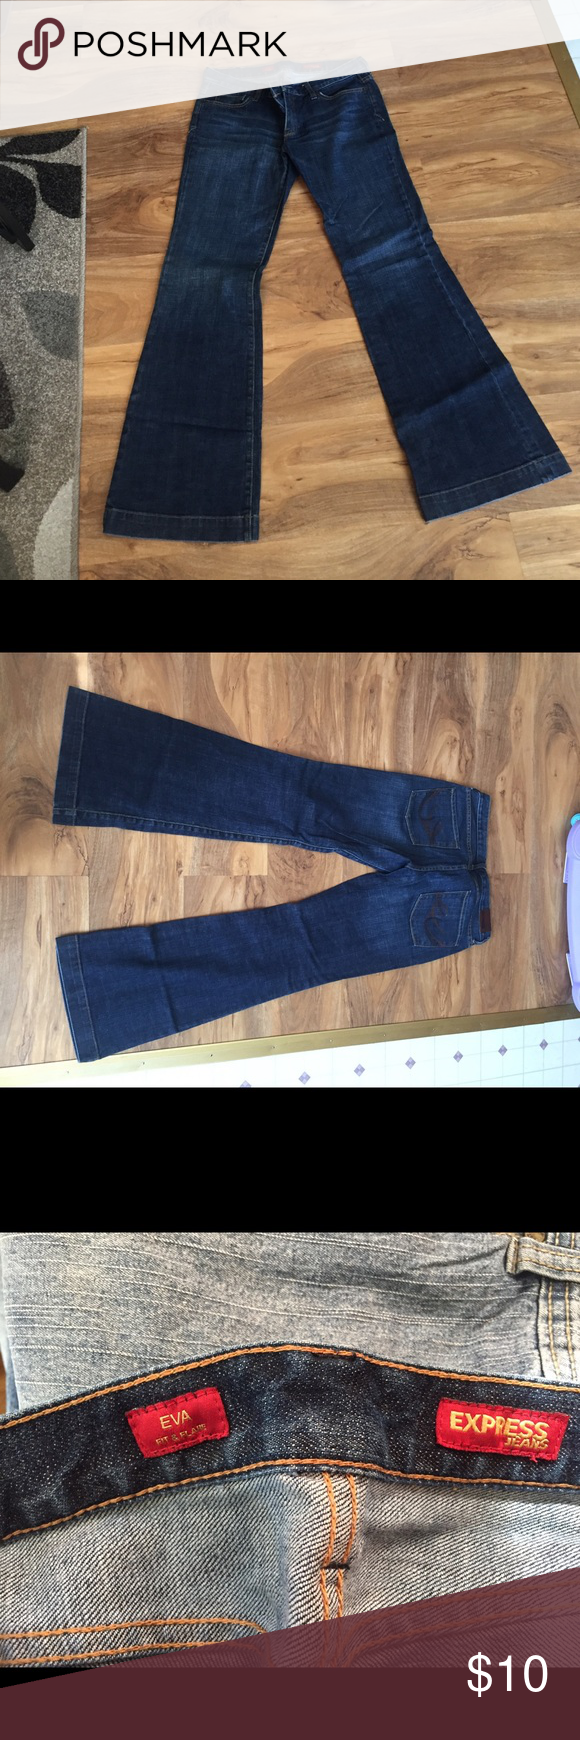 Express Jeans Express Eva fit and flare jeans. Dark colored. Never worn. Size 10 long. Express Jeans Flare & Wide Leg